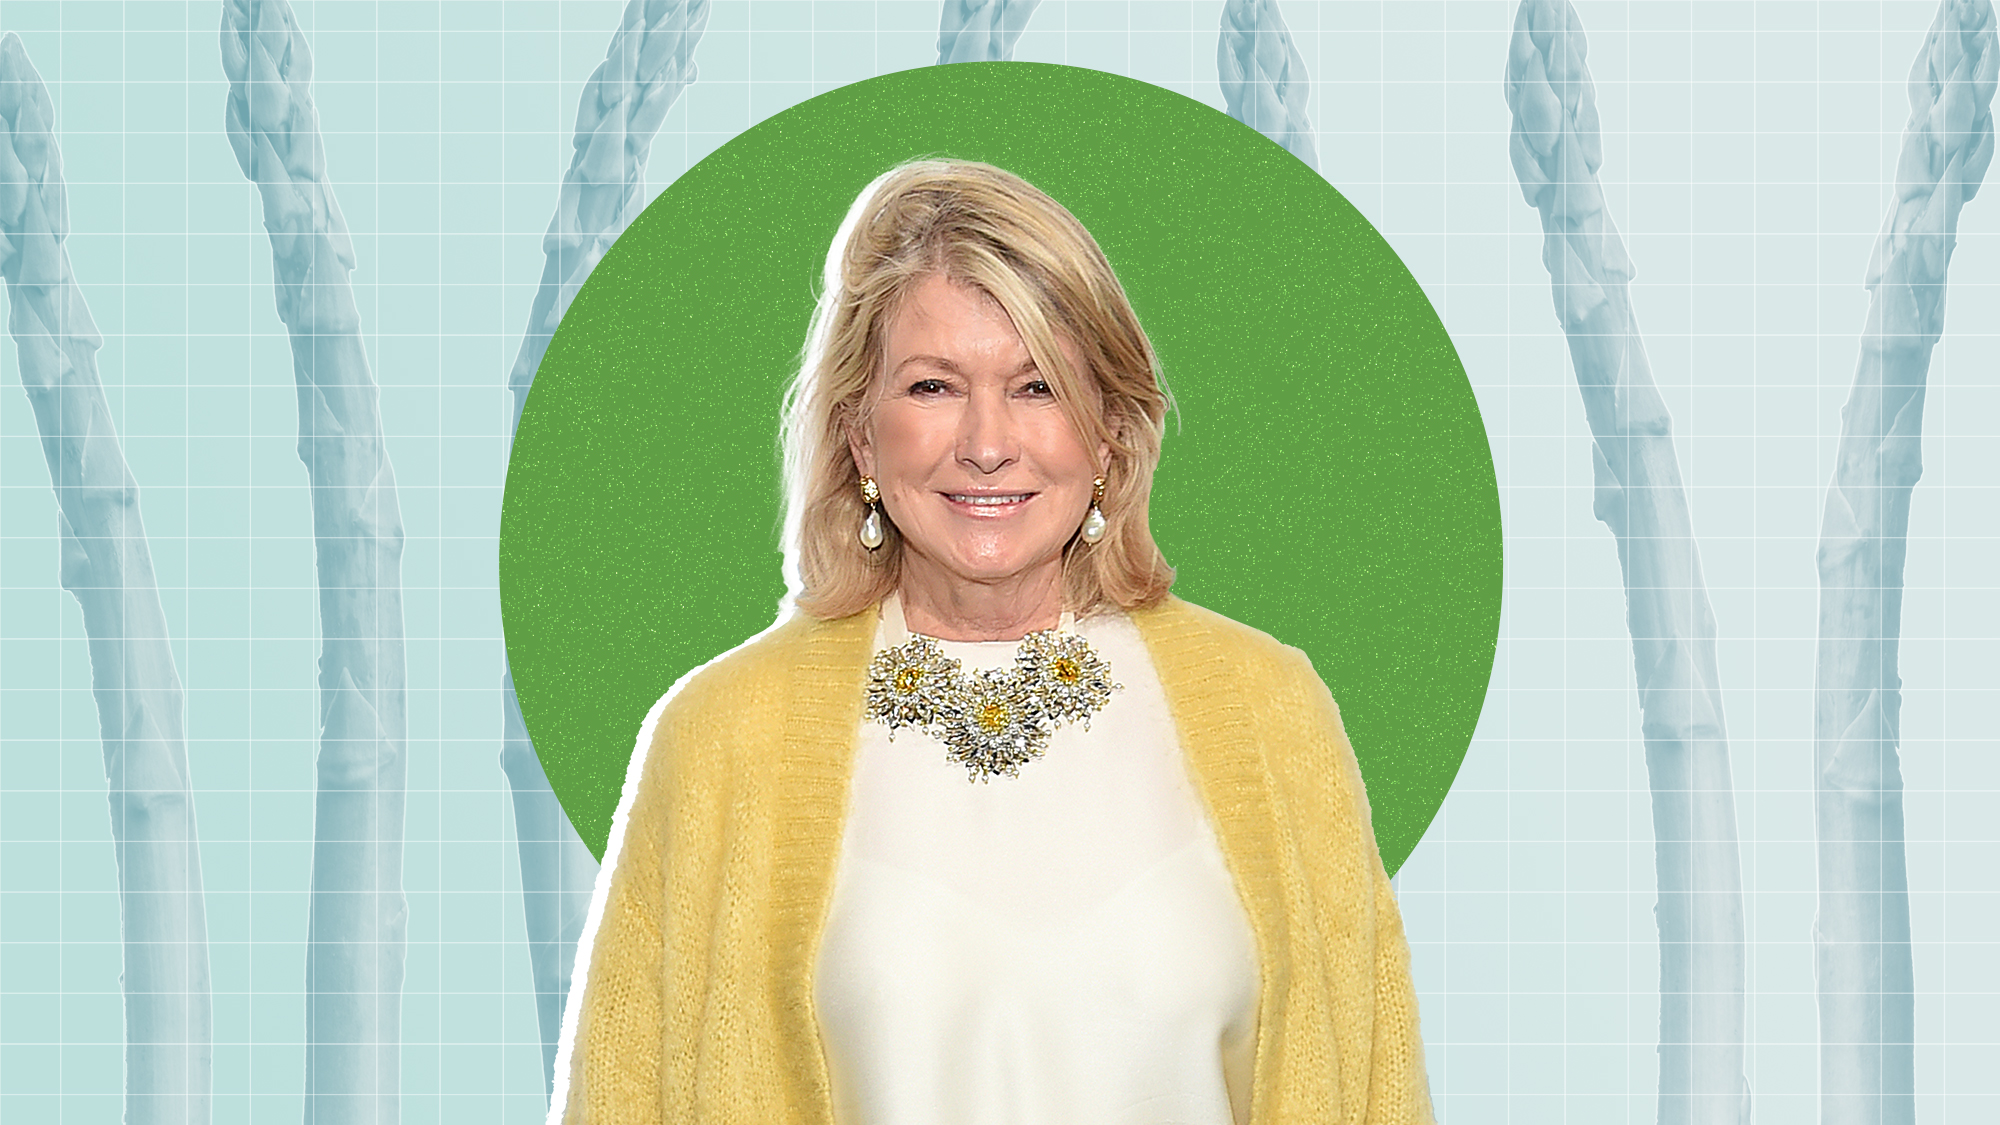 Martha Stewart on a designed background